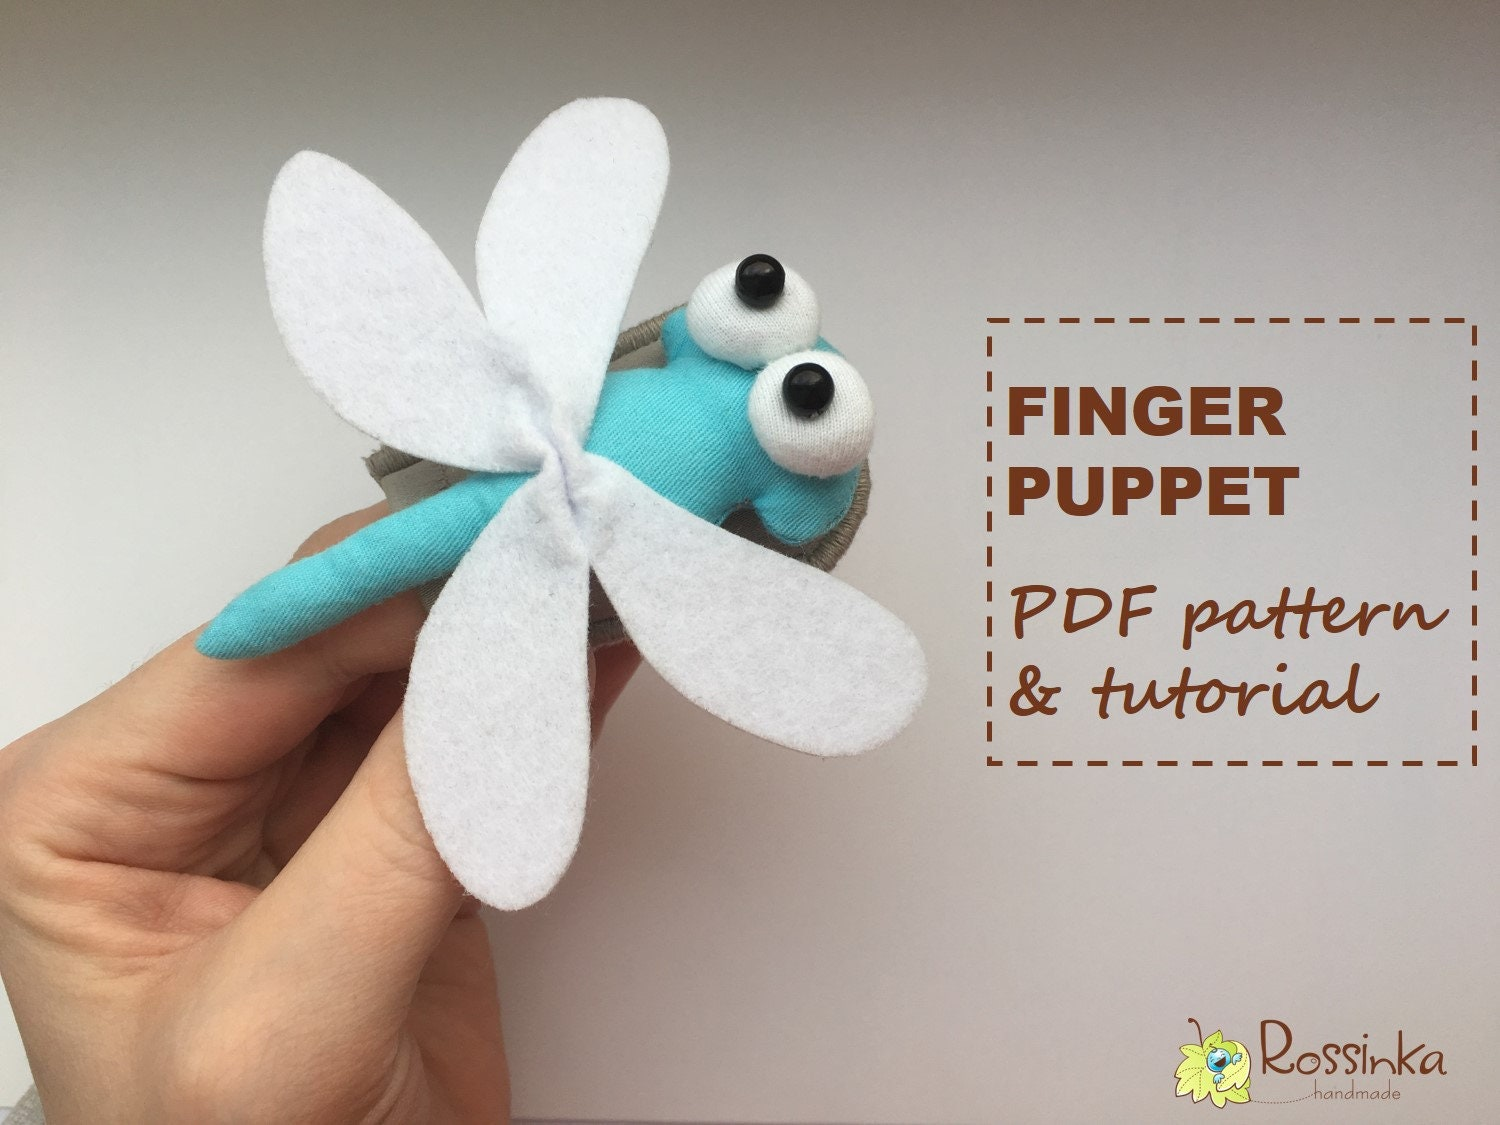 finger puppet dragonfly pdf pattern and tutorial toy | etsy